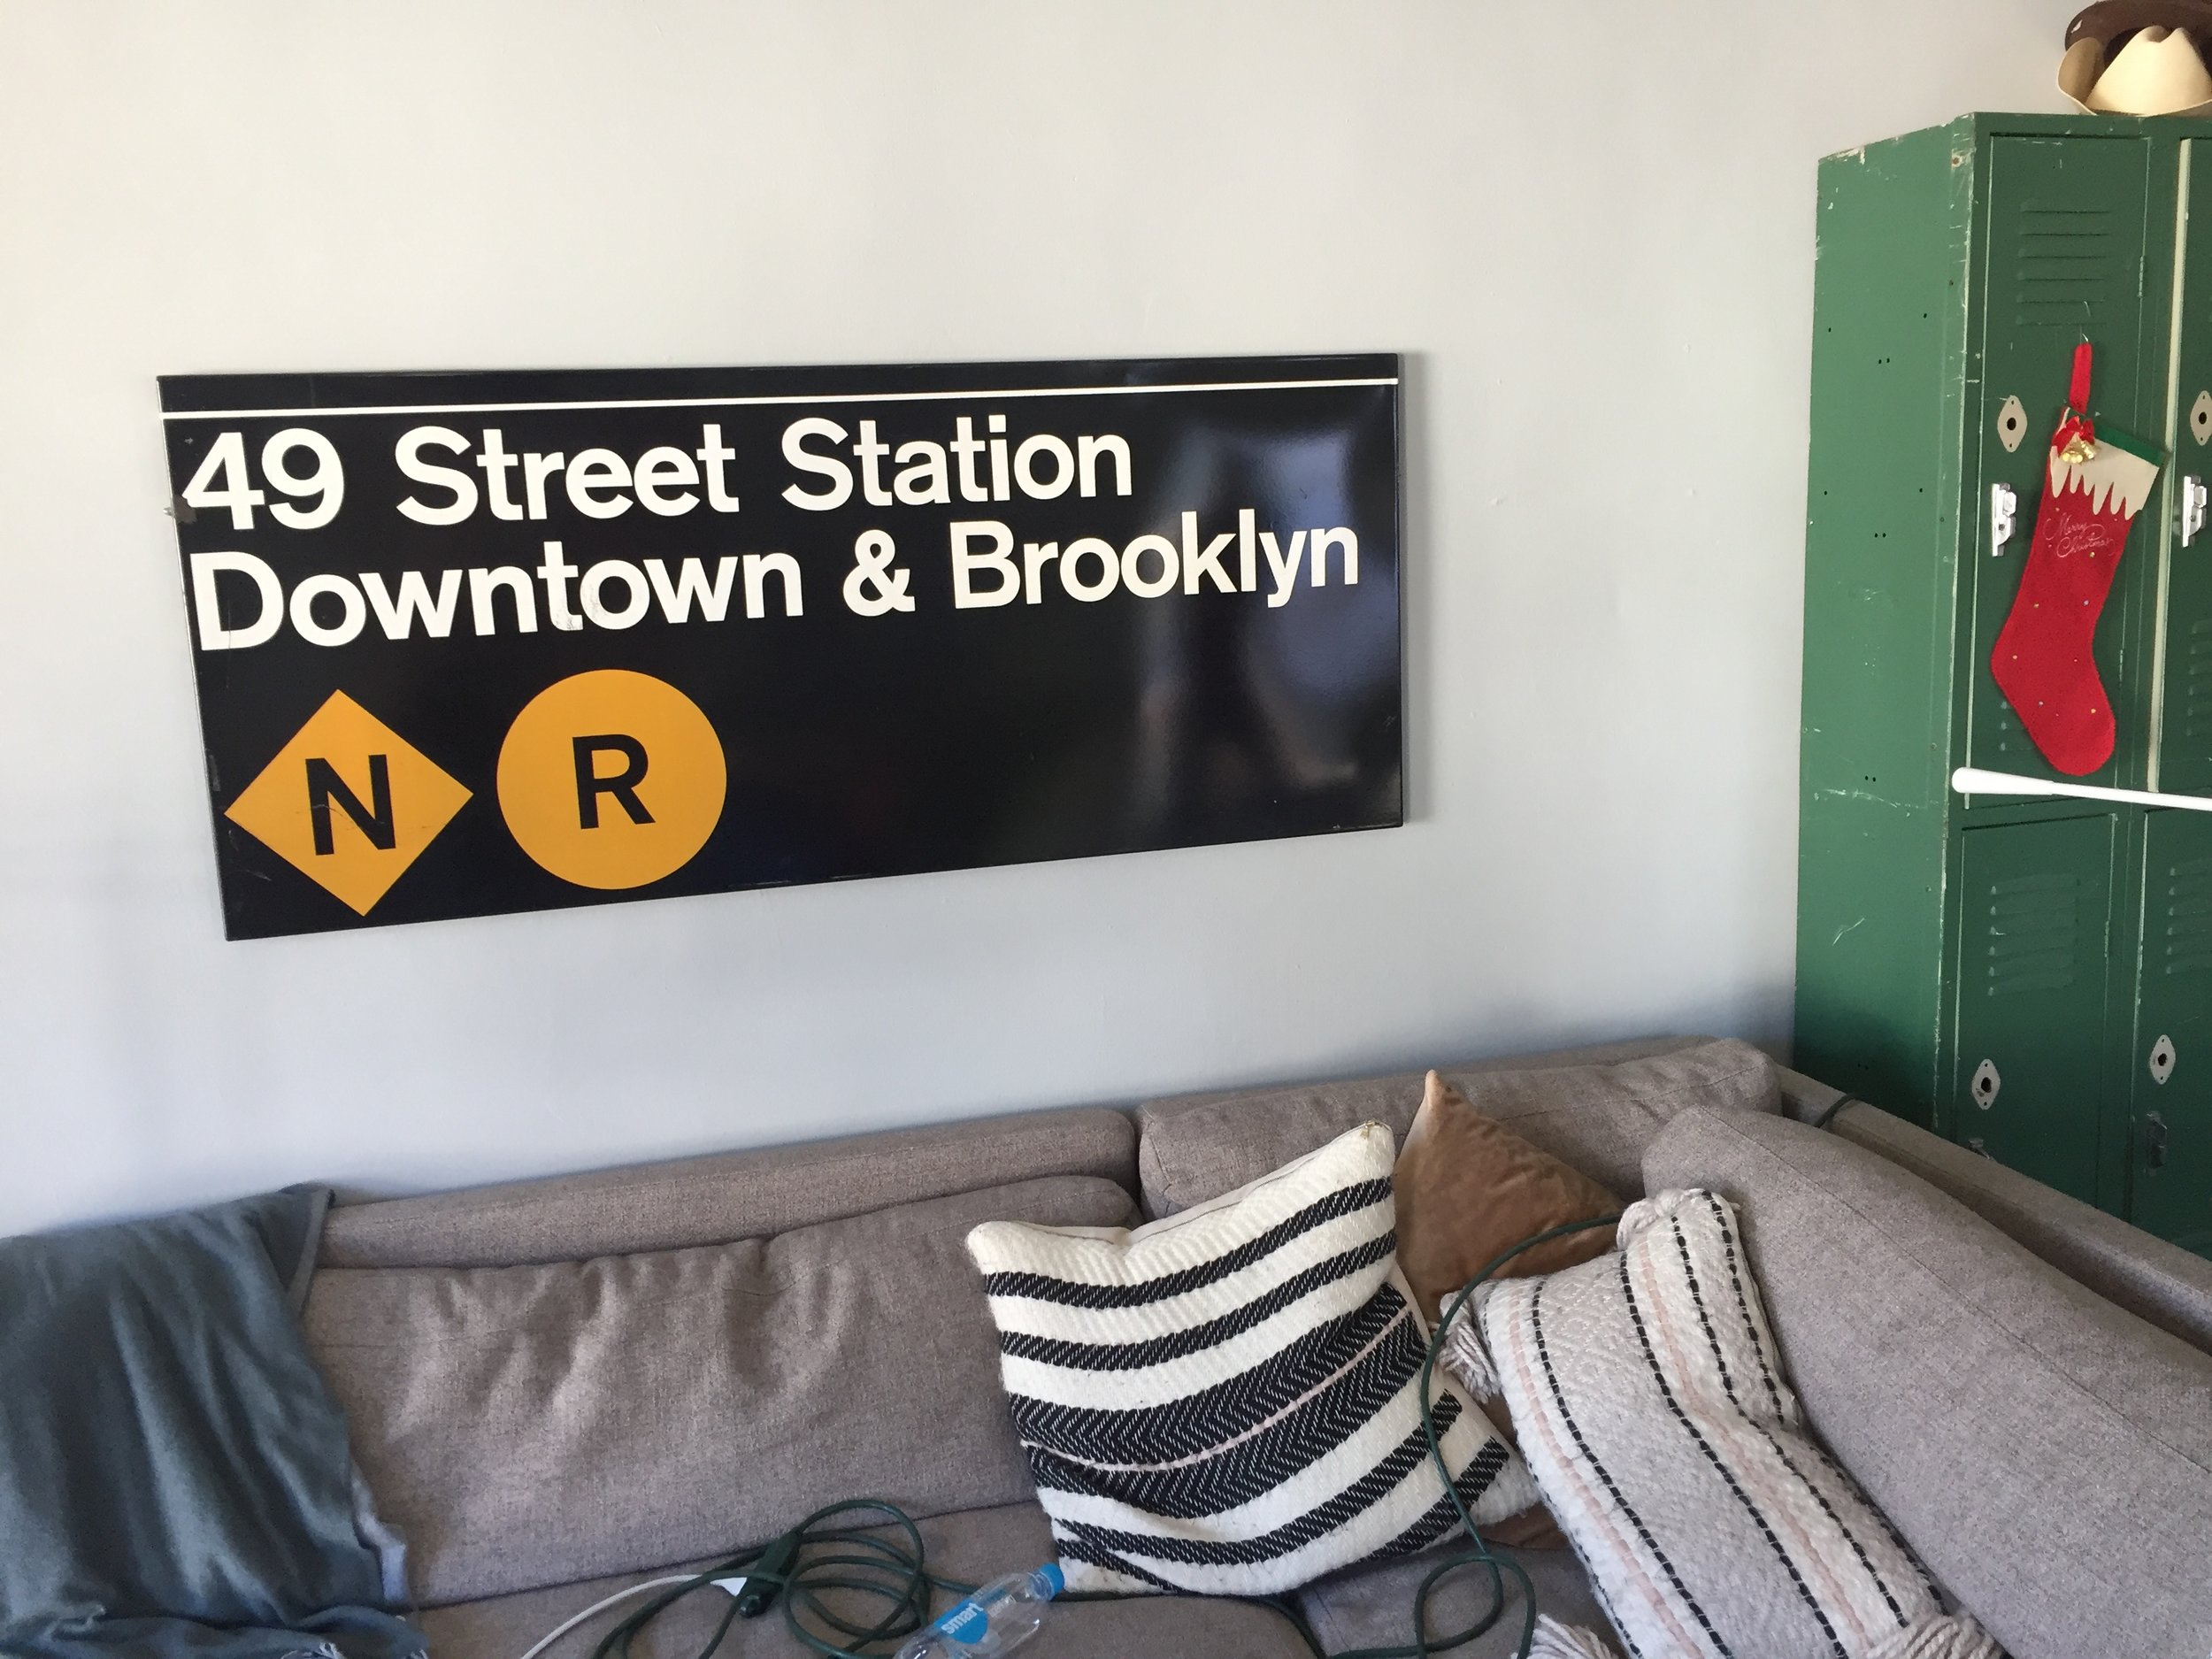 The subway sign from where they had their first kiss.